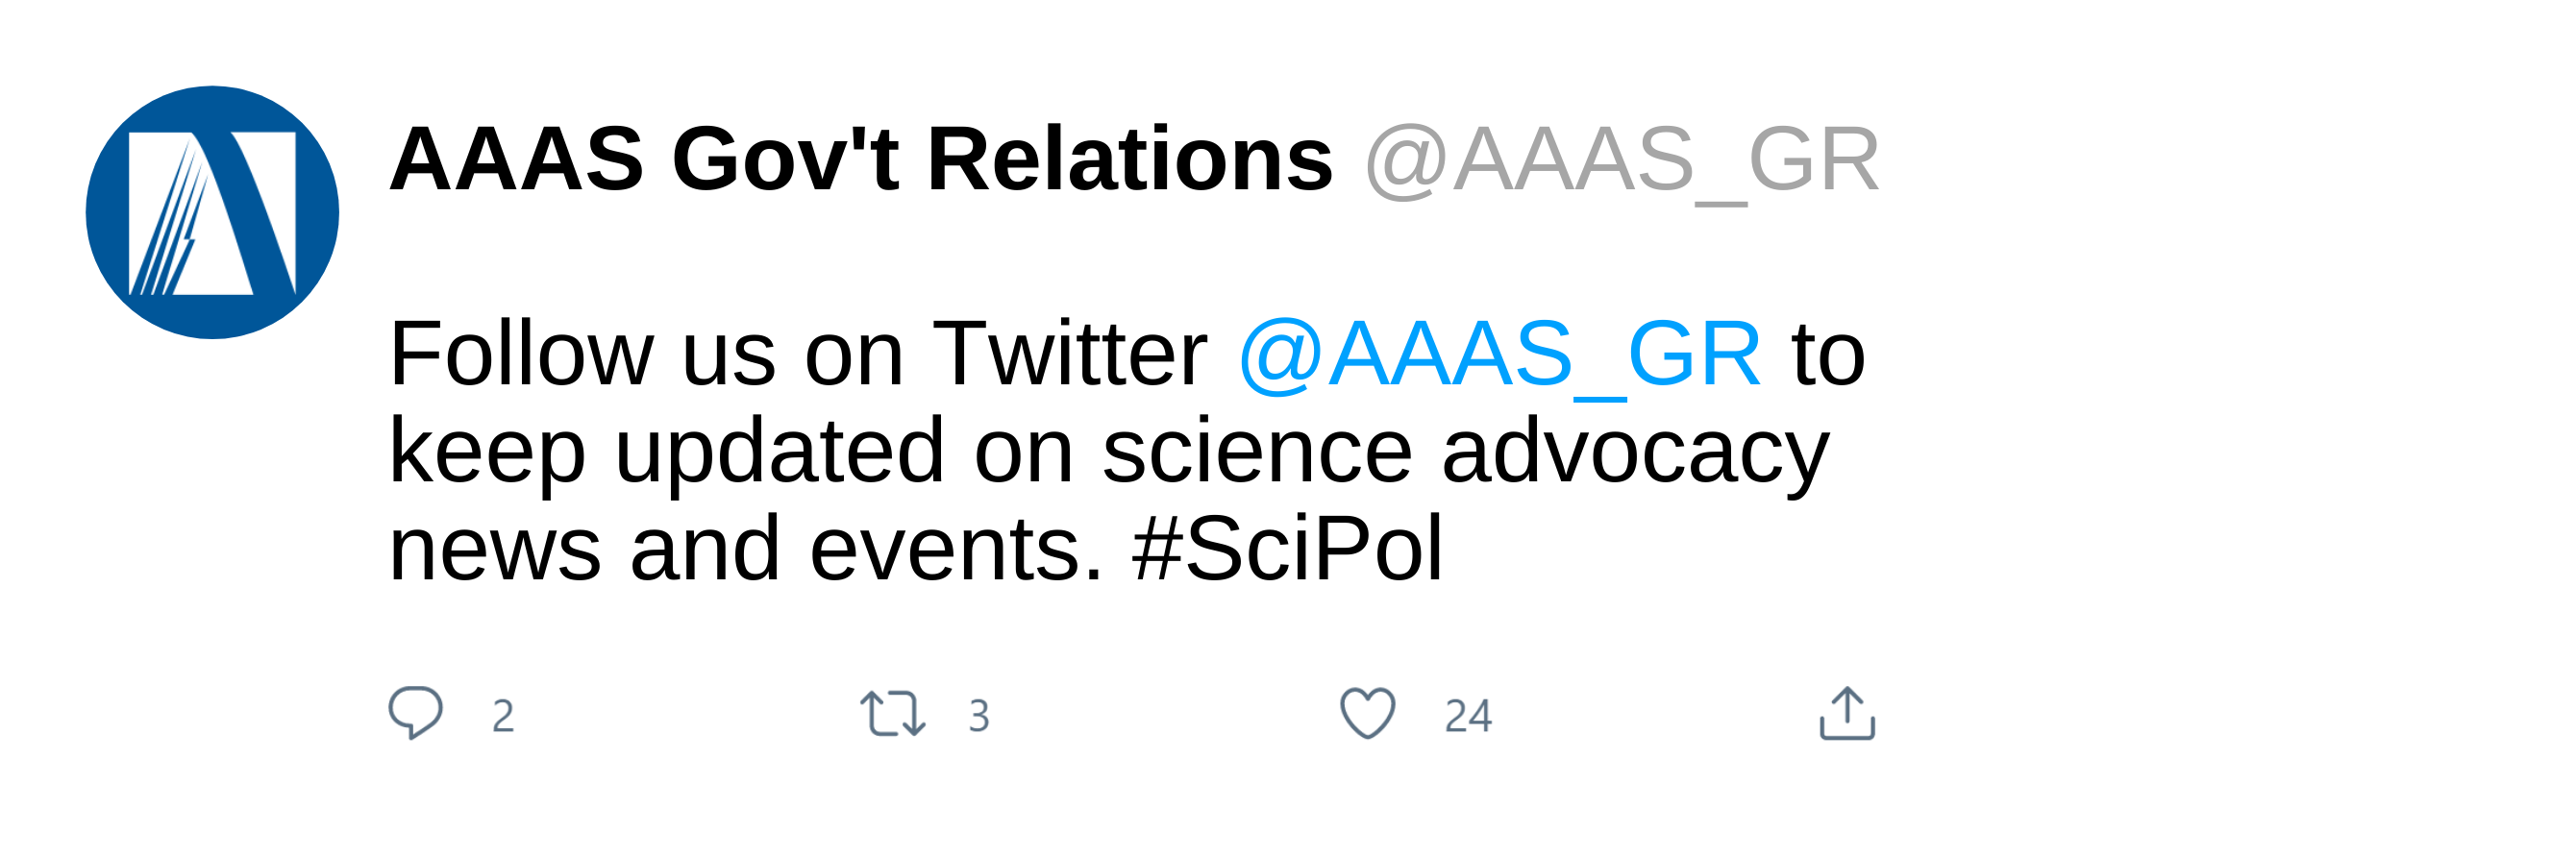 Twitter post with text: Follow us on Twitter @AAAS_GR to keep updated on science advocacy news and events. #SciPol